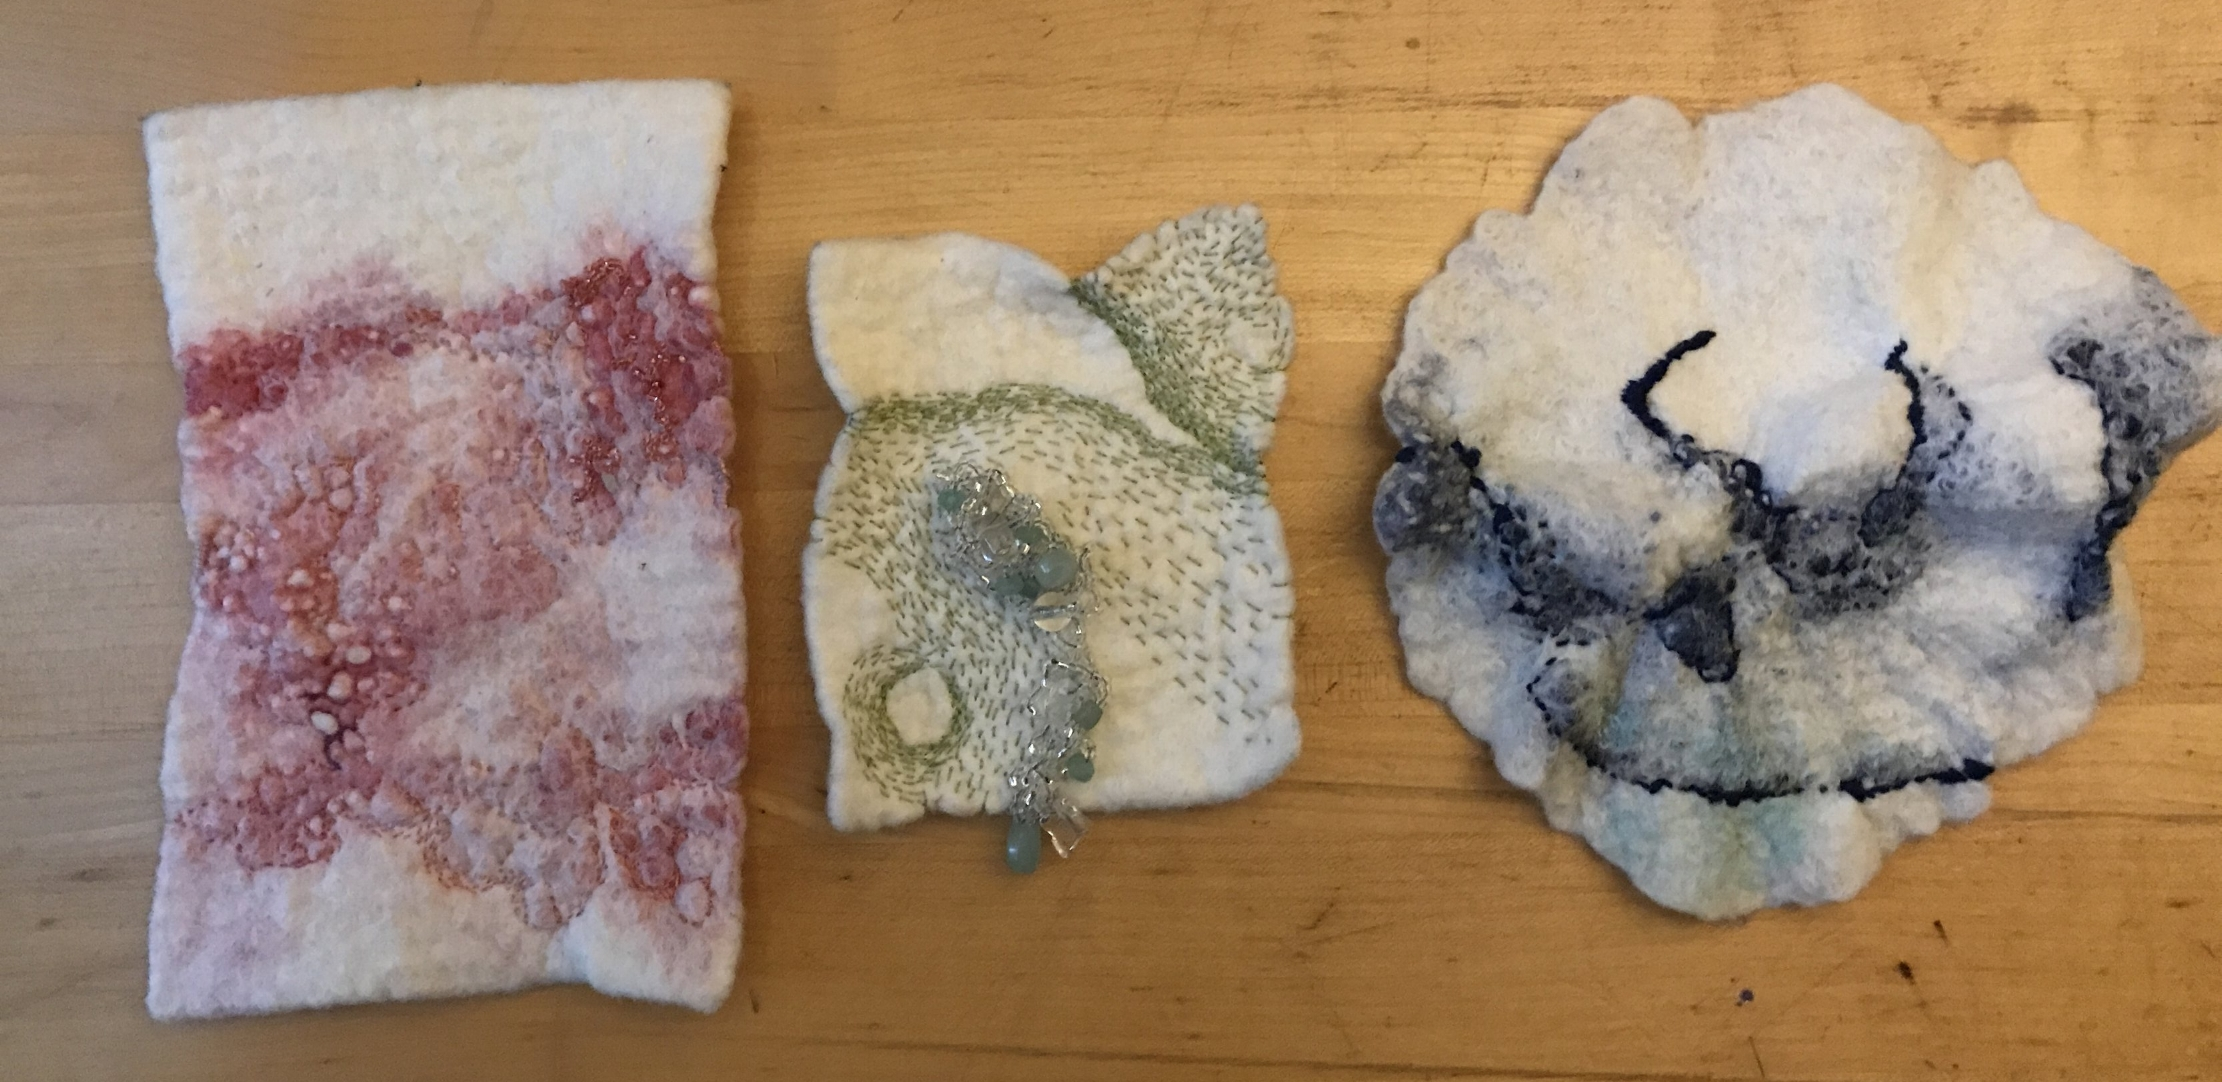 the felt series in progress...